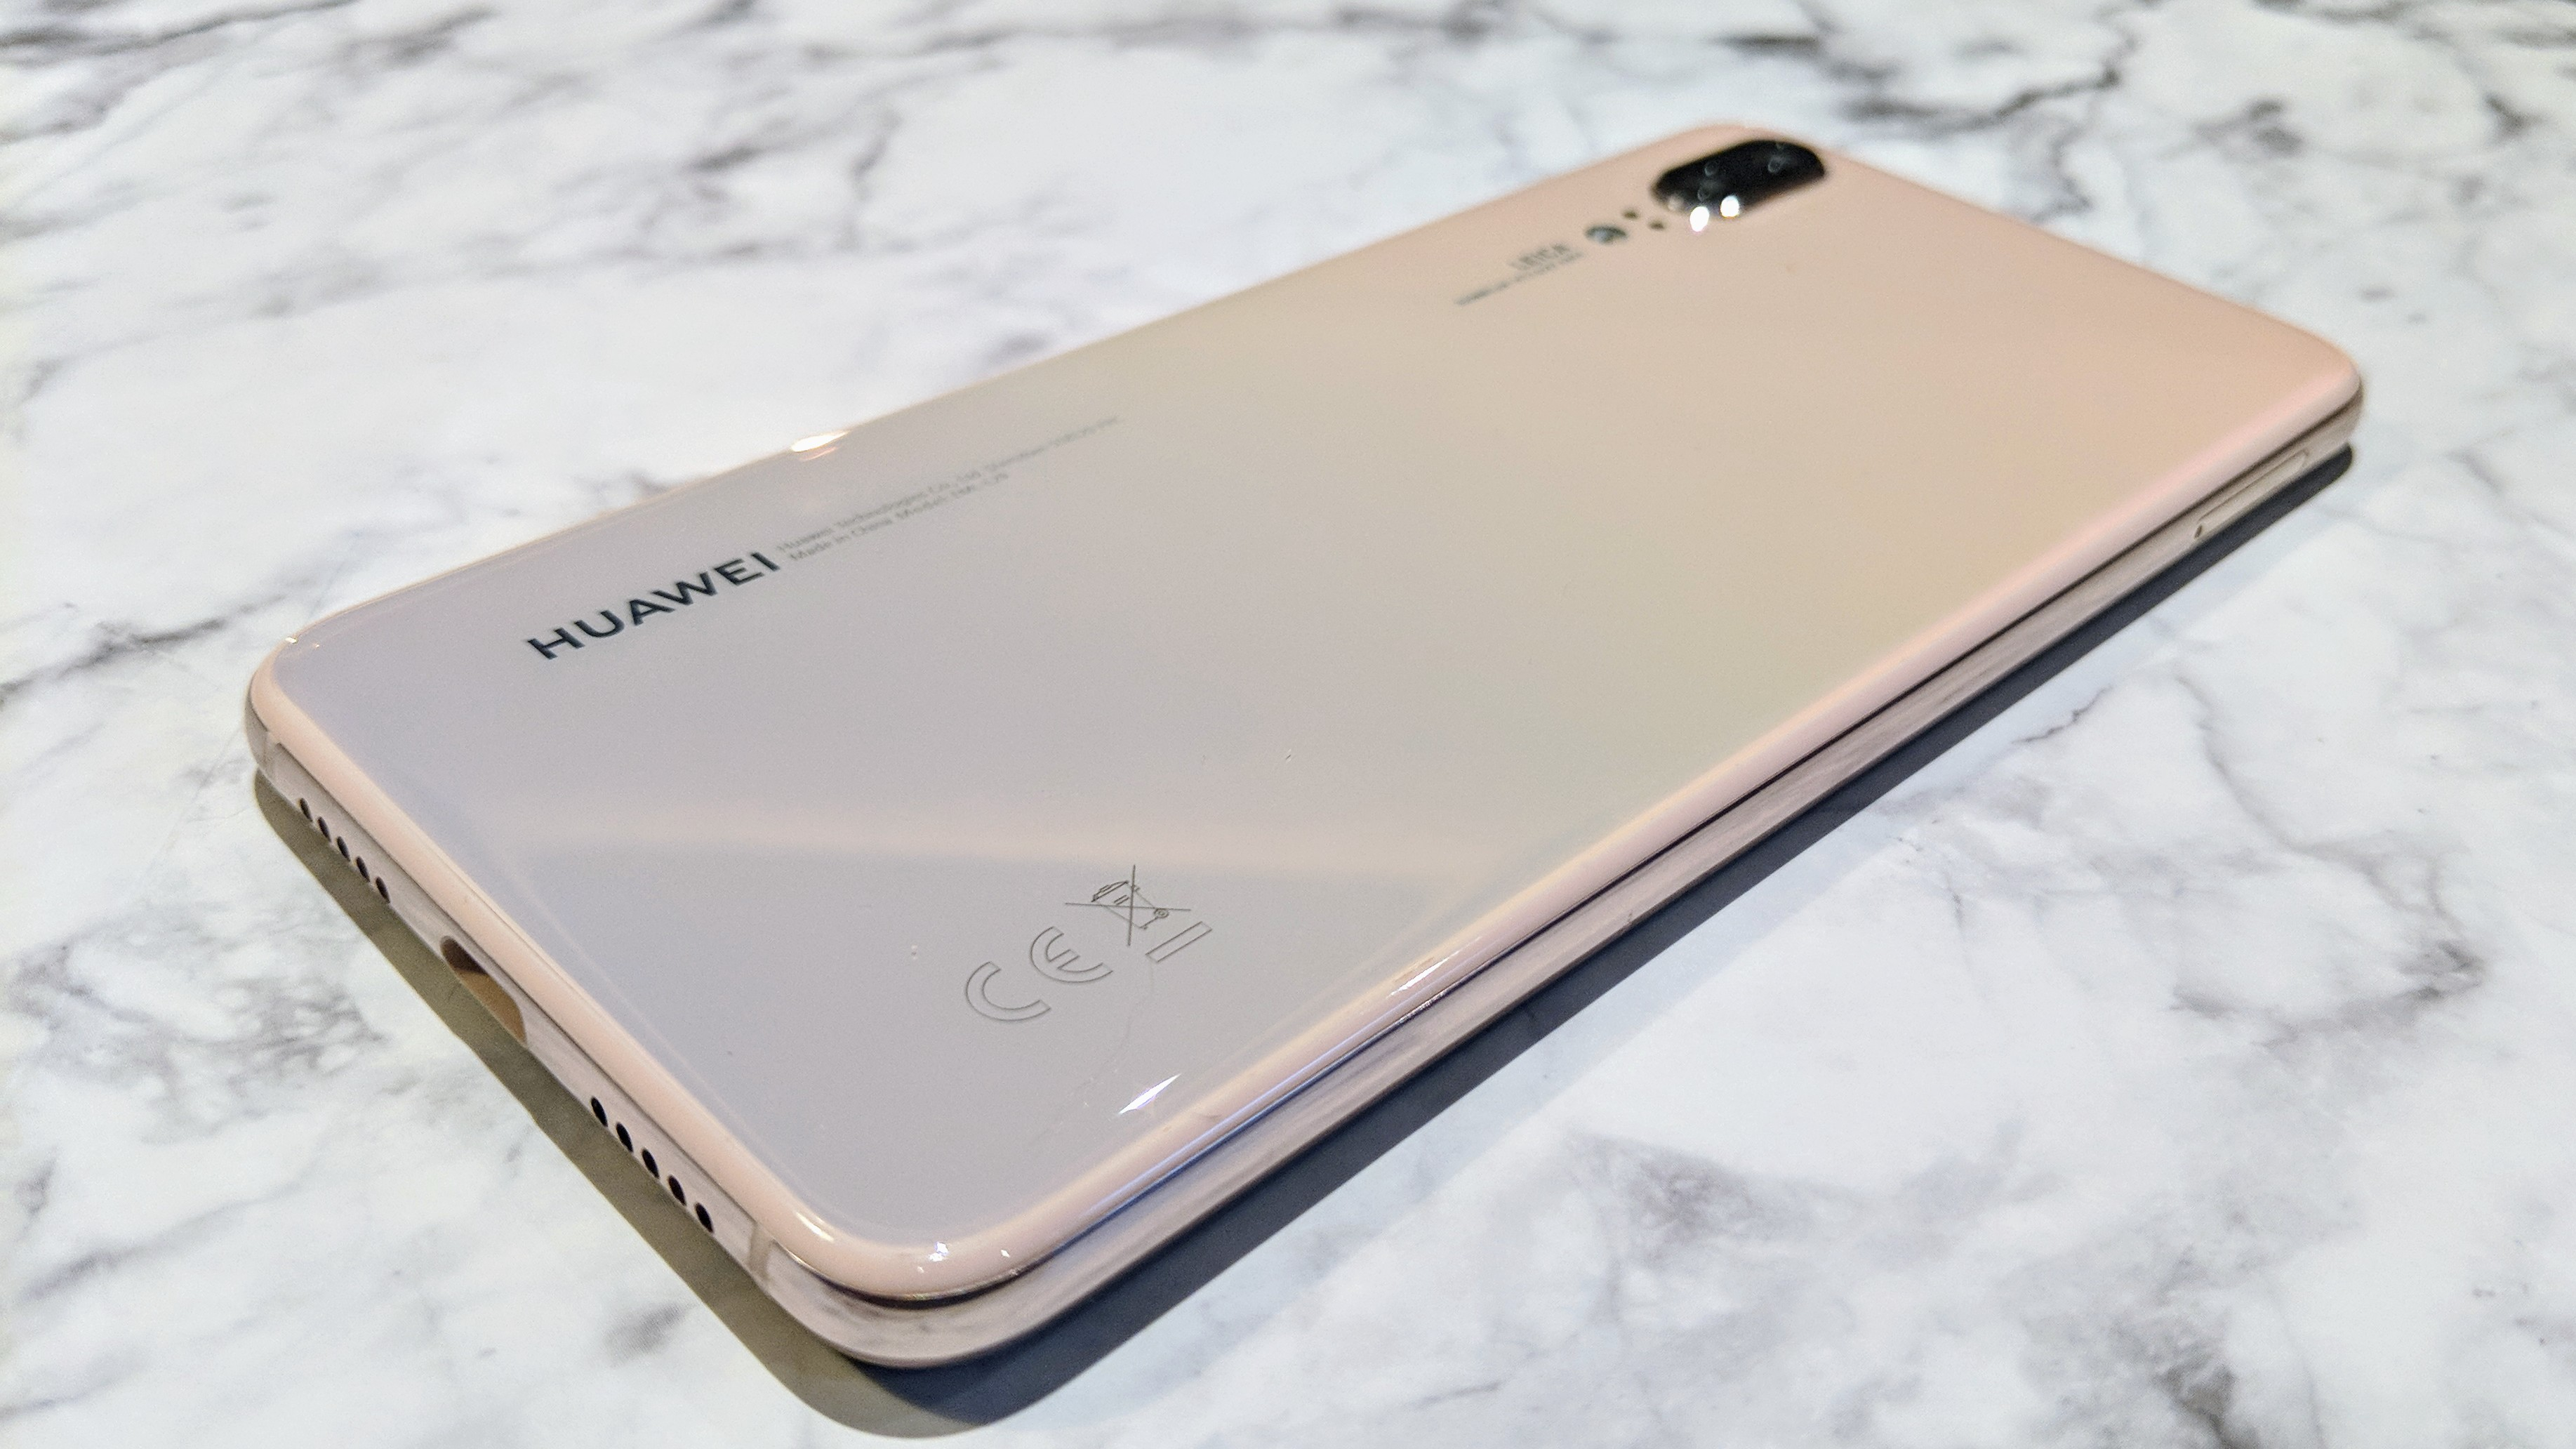 Huawei P30 Pro price and release date leak, and official renders